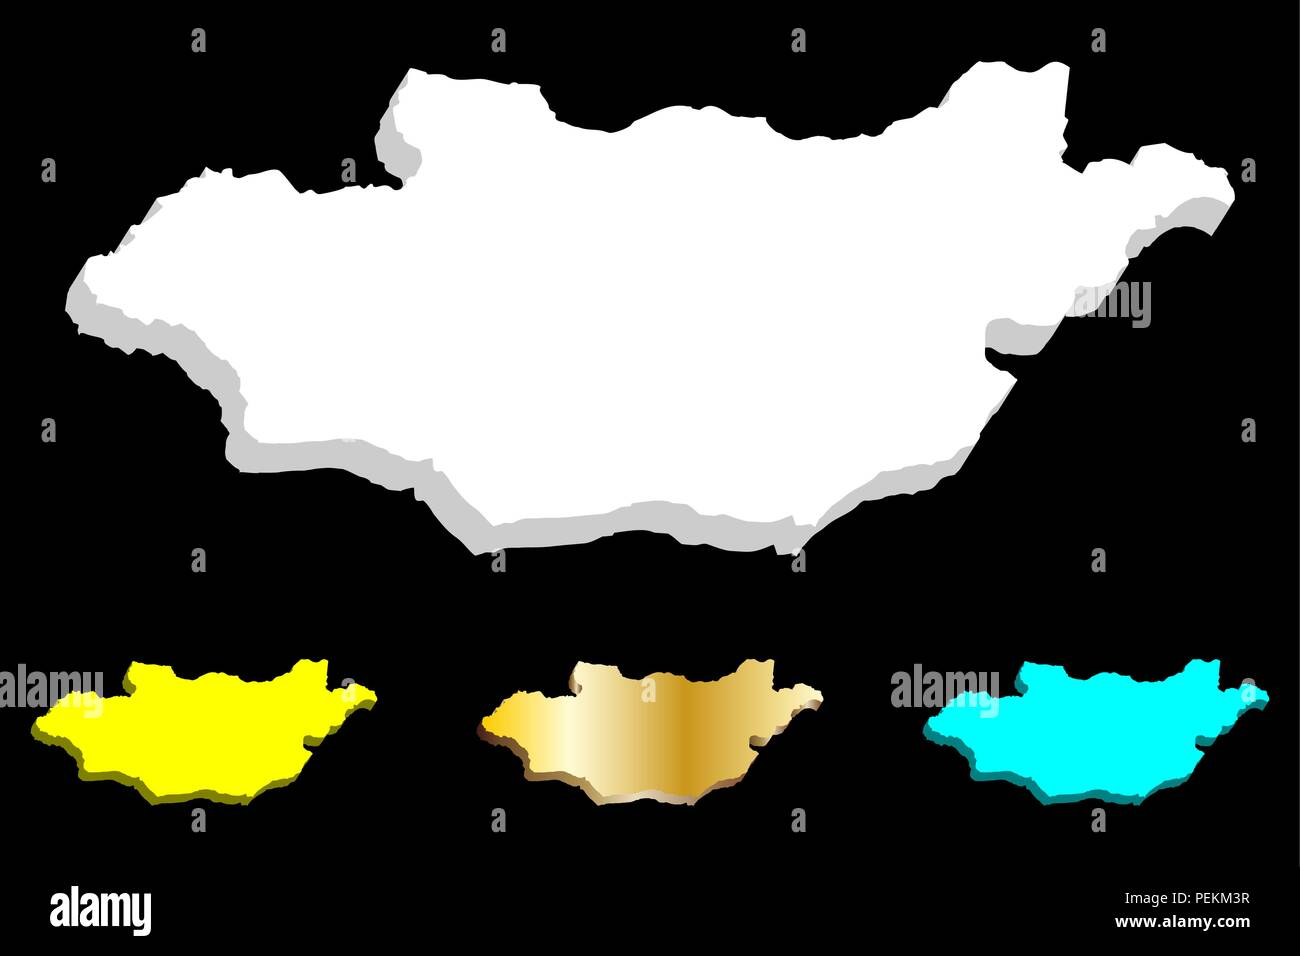 3D map of Nepal Mongolia - white, yellow, blue and gold - vector illustration - Stock Vector